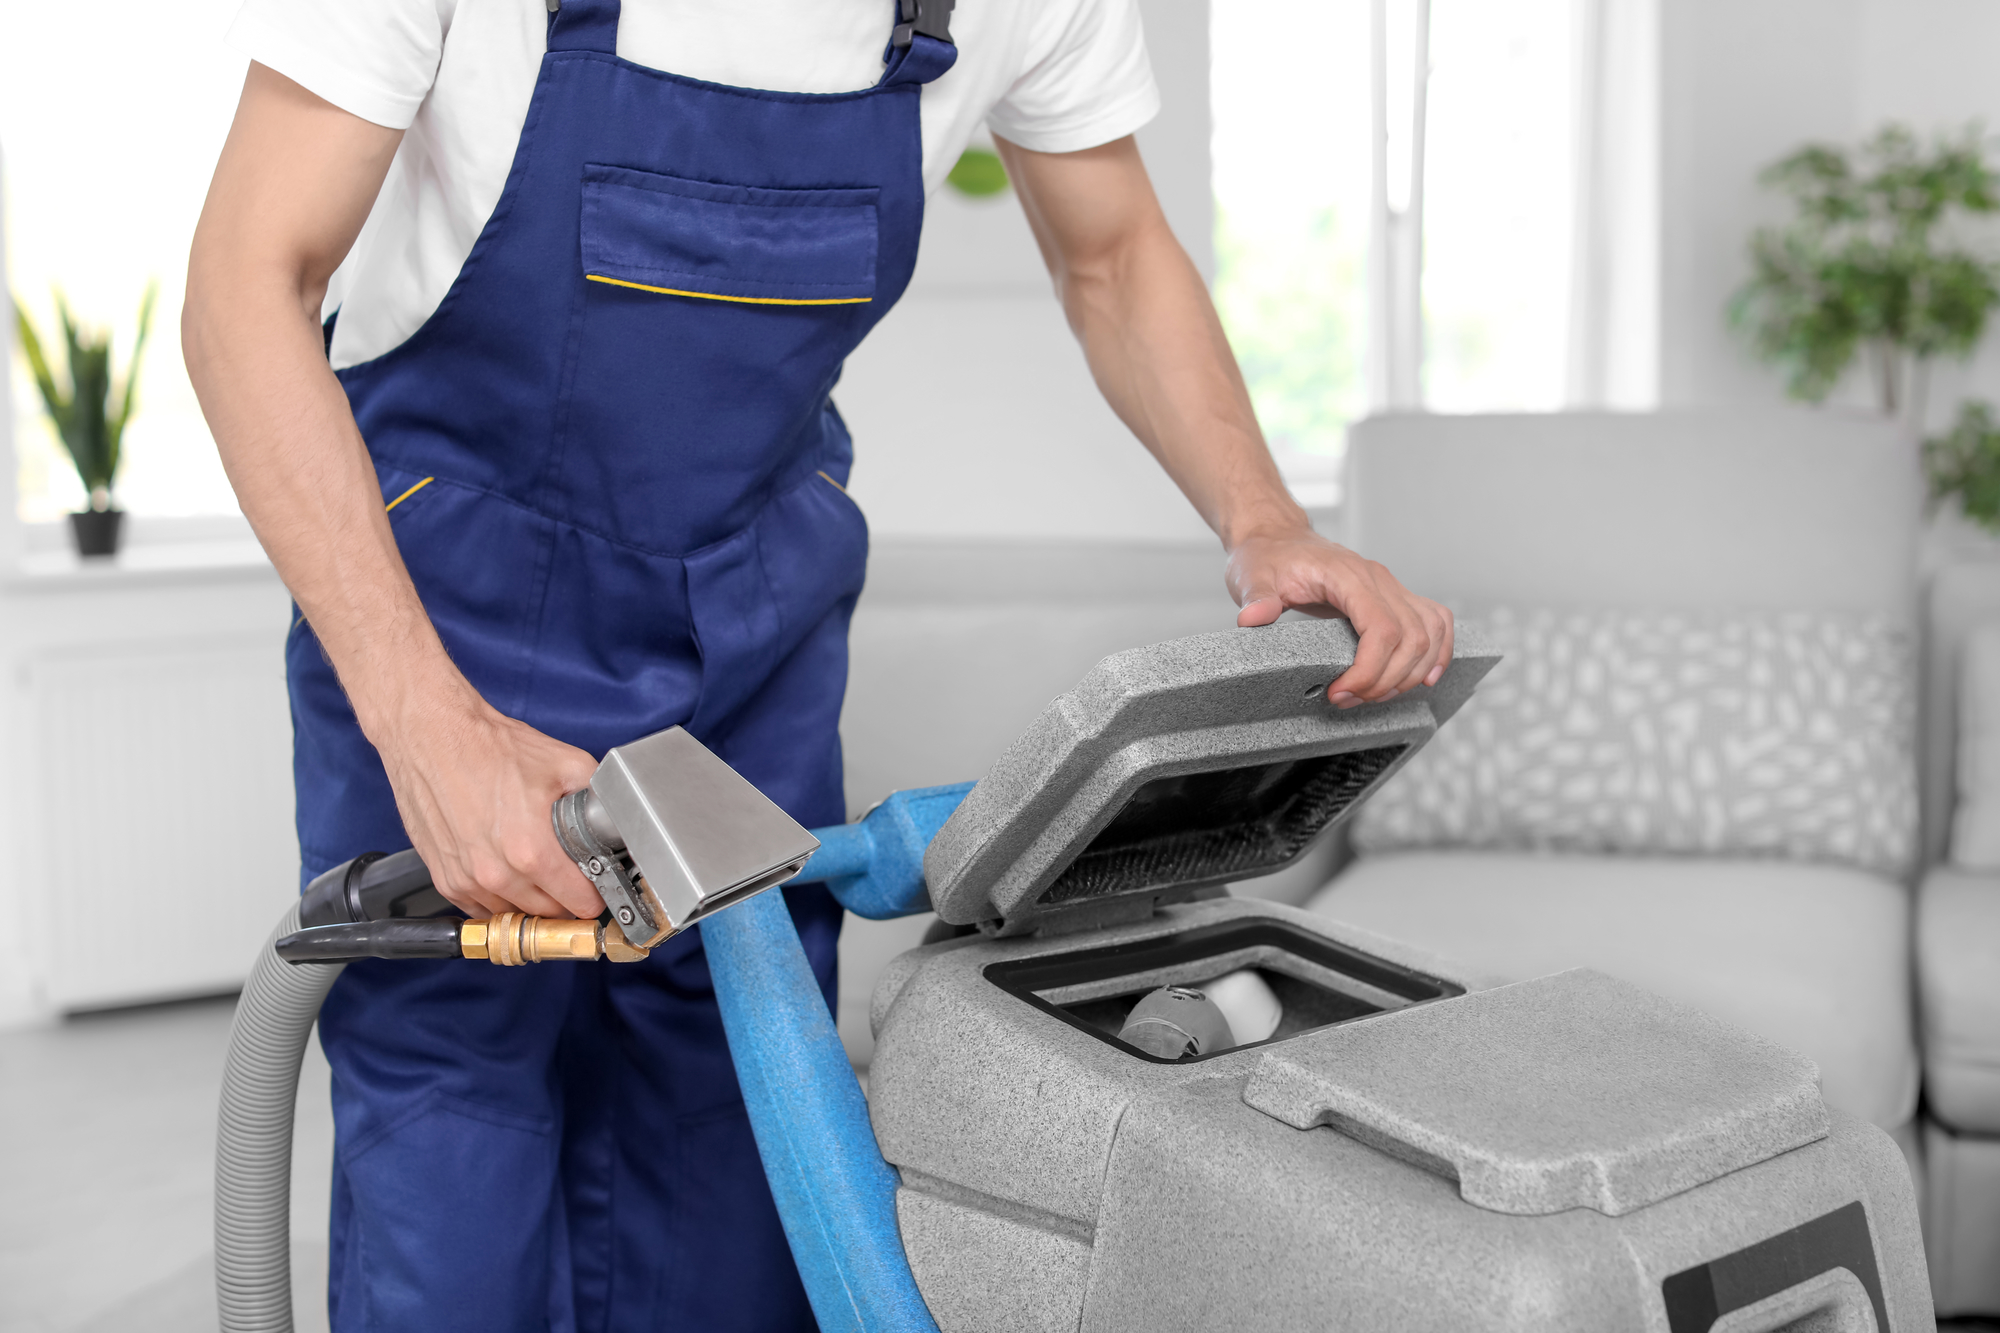 Where can I find the best upholstery cleaning supplies in Fort Myers?